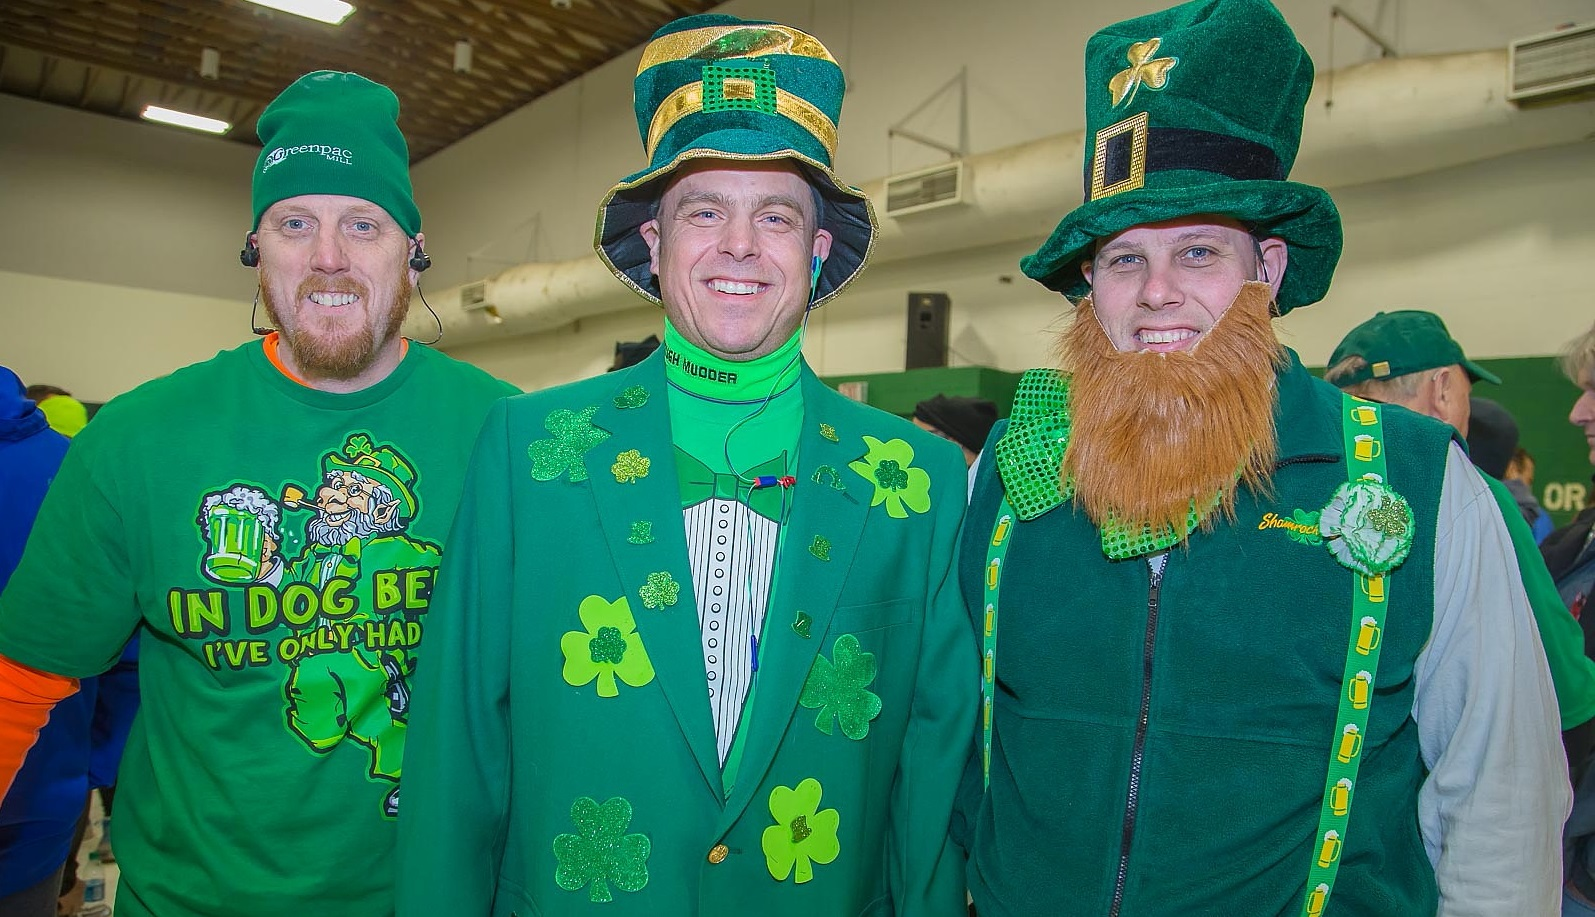 Runners wear different apparel for the Shamrock Run compared to other races. (Photo by Don Nieman / Special to The News)